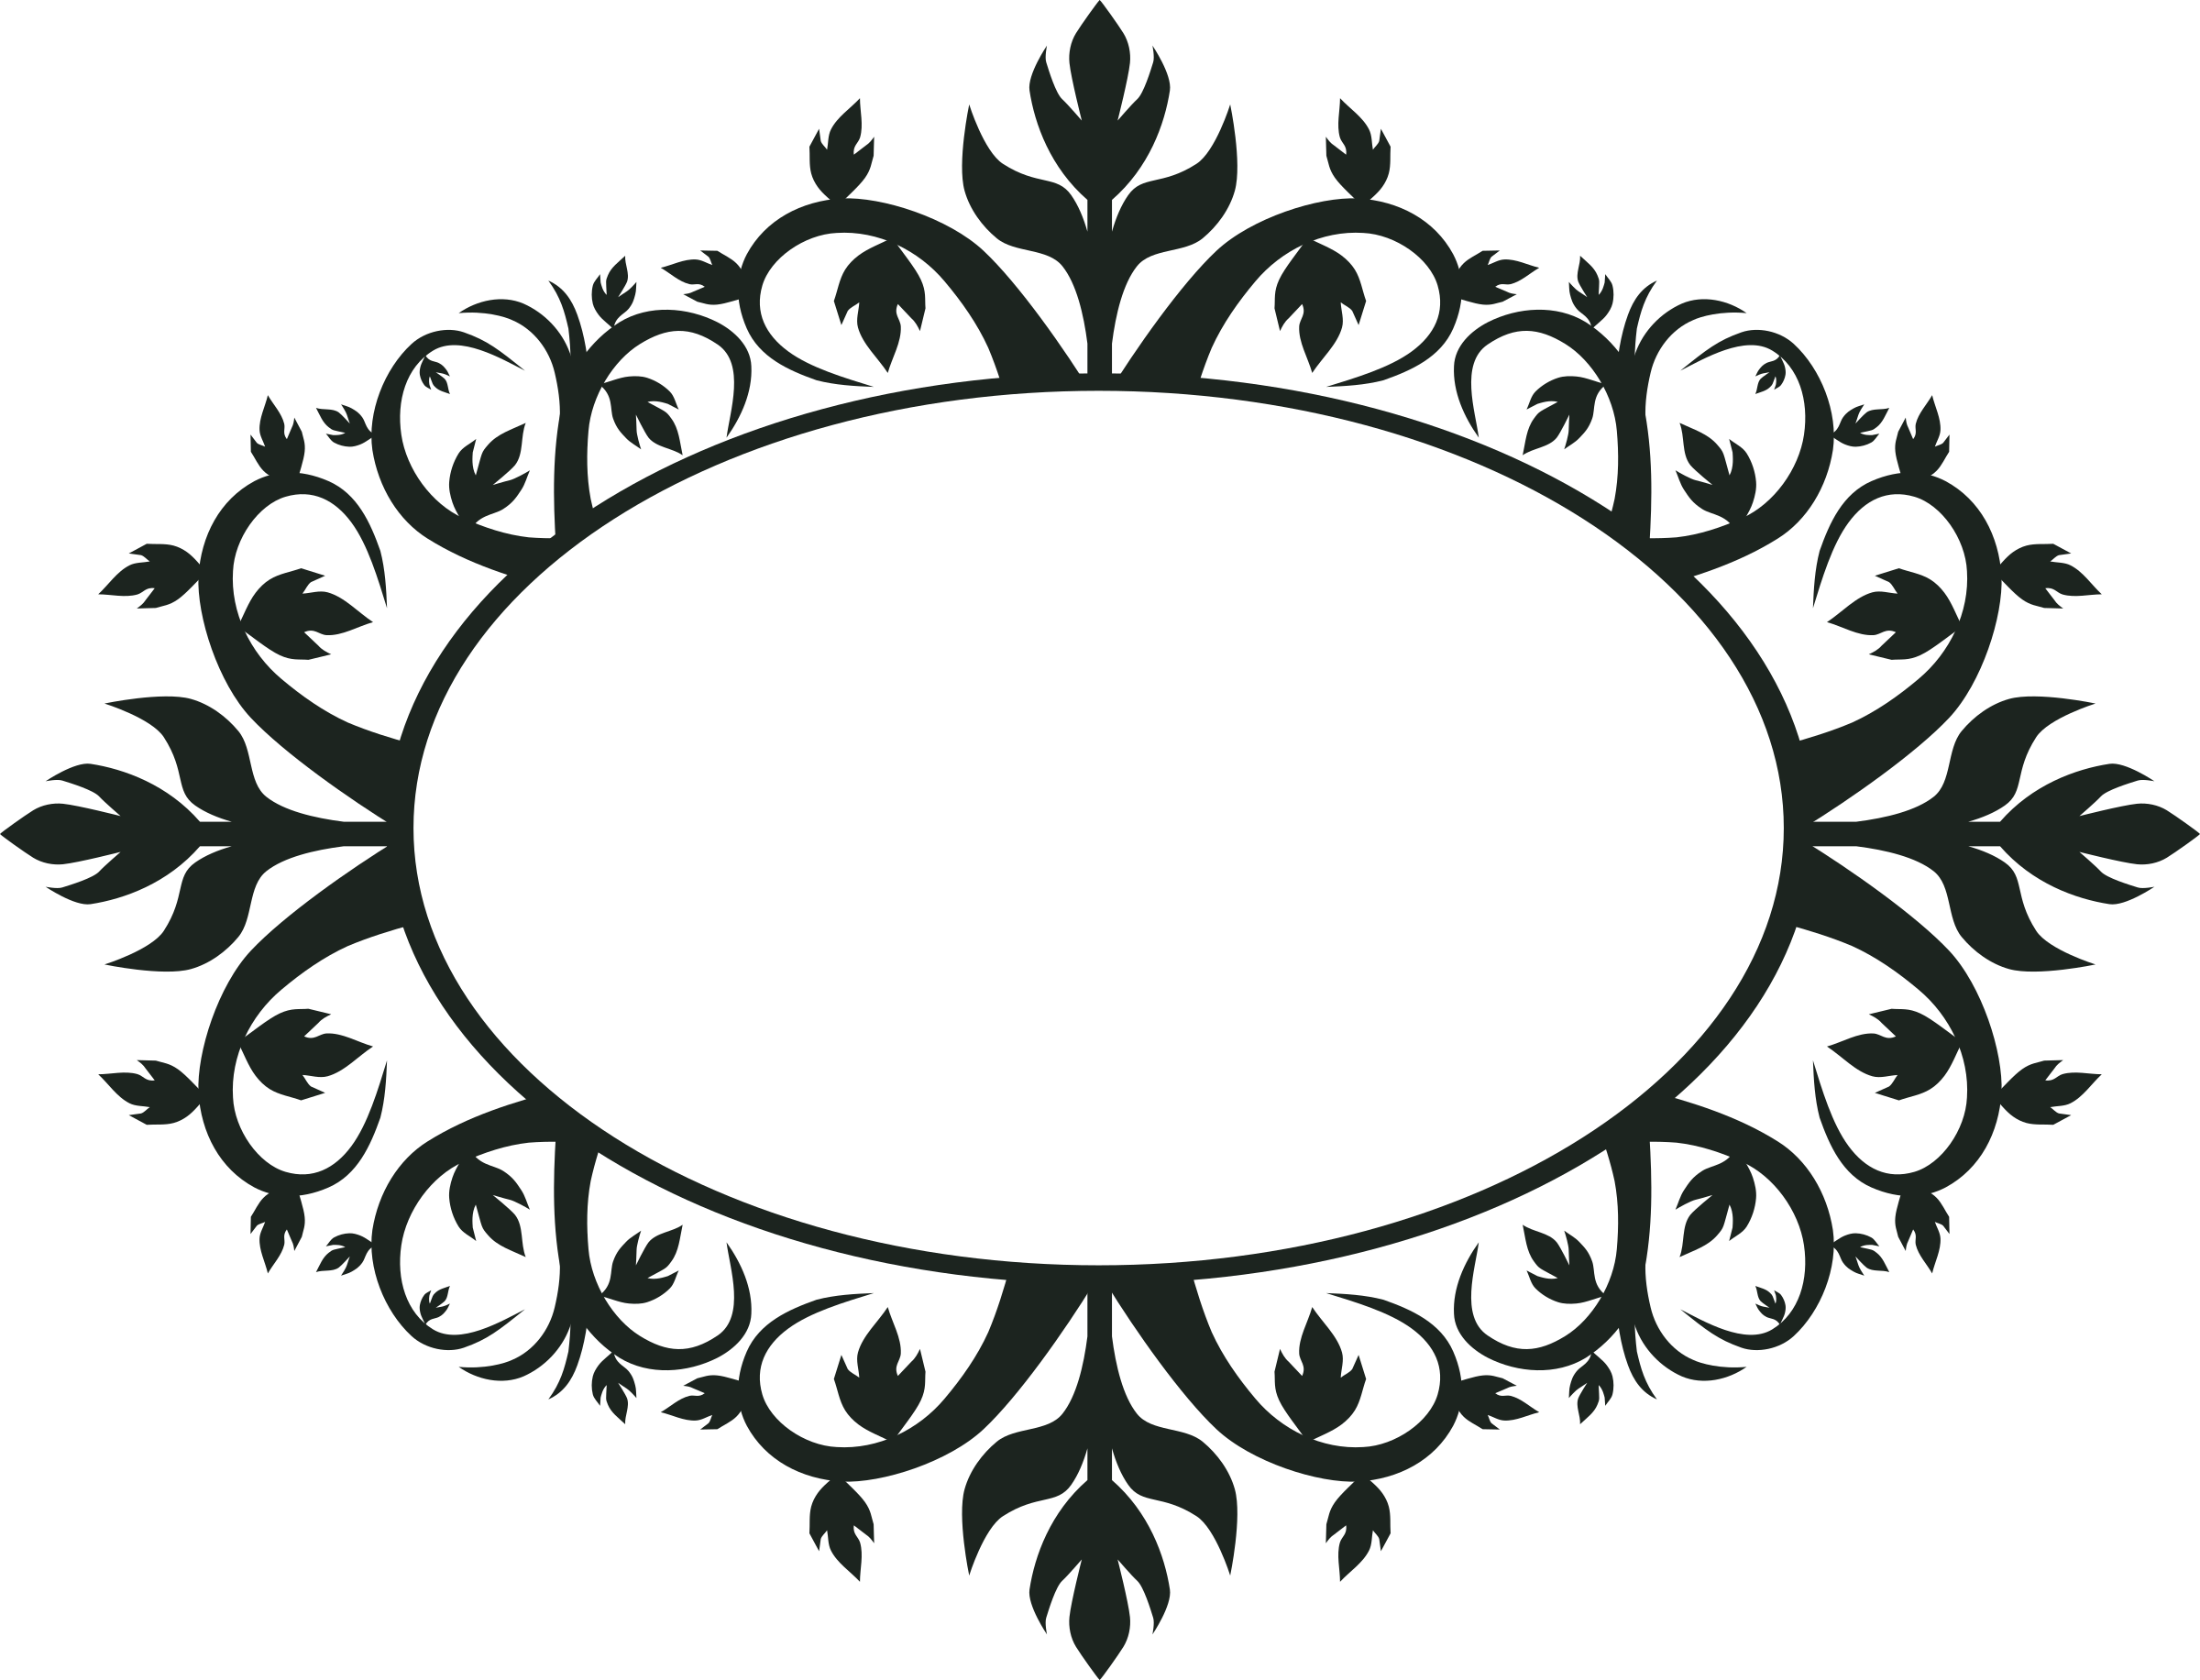 Comprised clipart fancy.